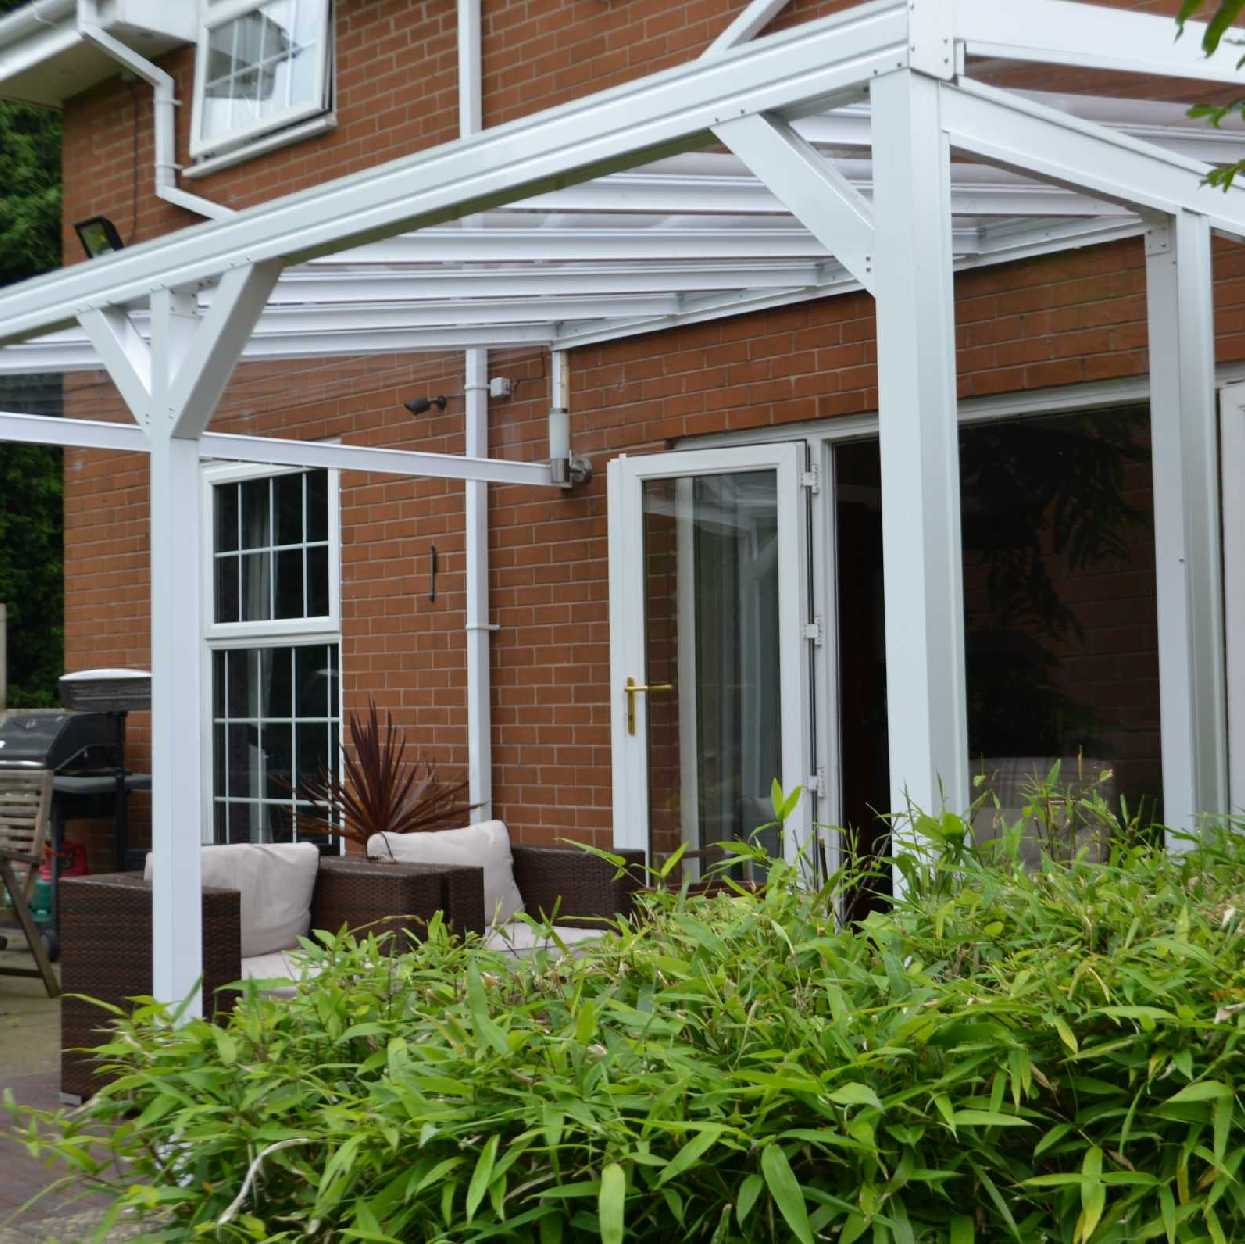 Omega Smart White Lean-To Canopy UNGLAZED for 6mm Glazing - 3.5m (W) x 1.5m (P), (3) Supporting Posts from Omega Build